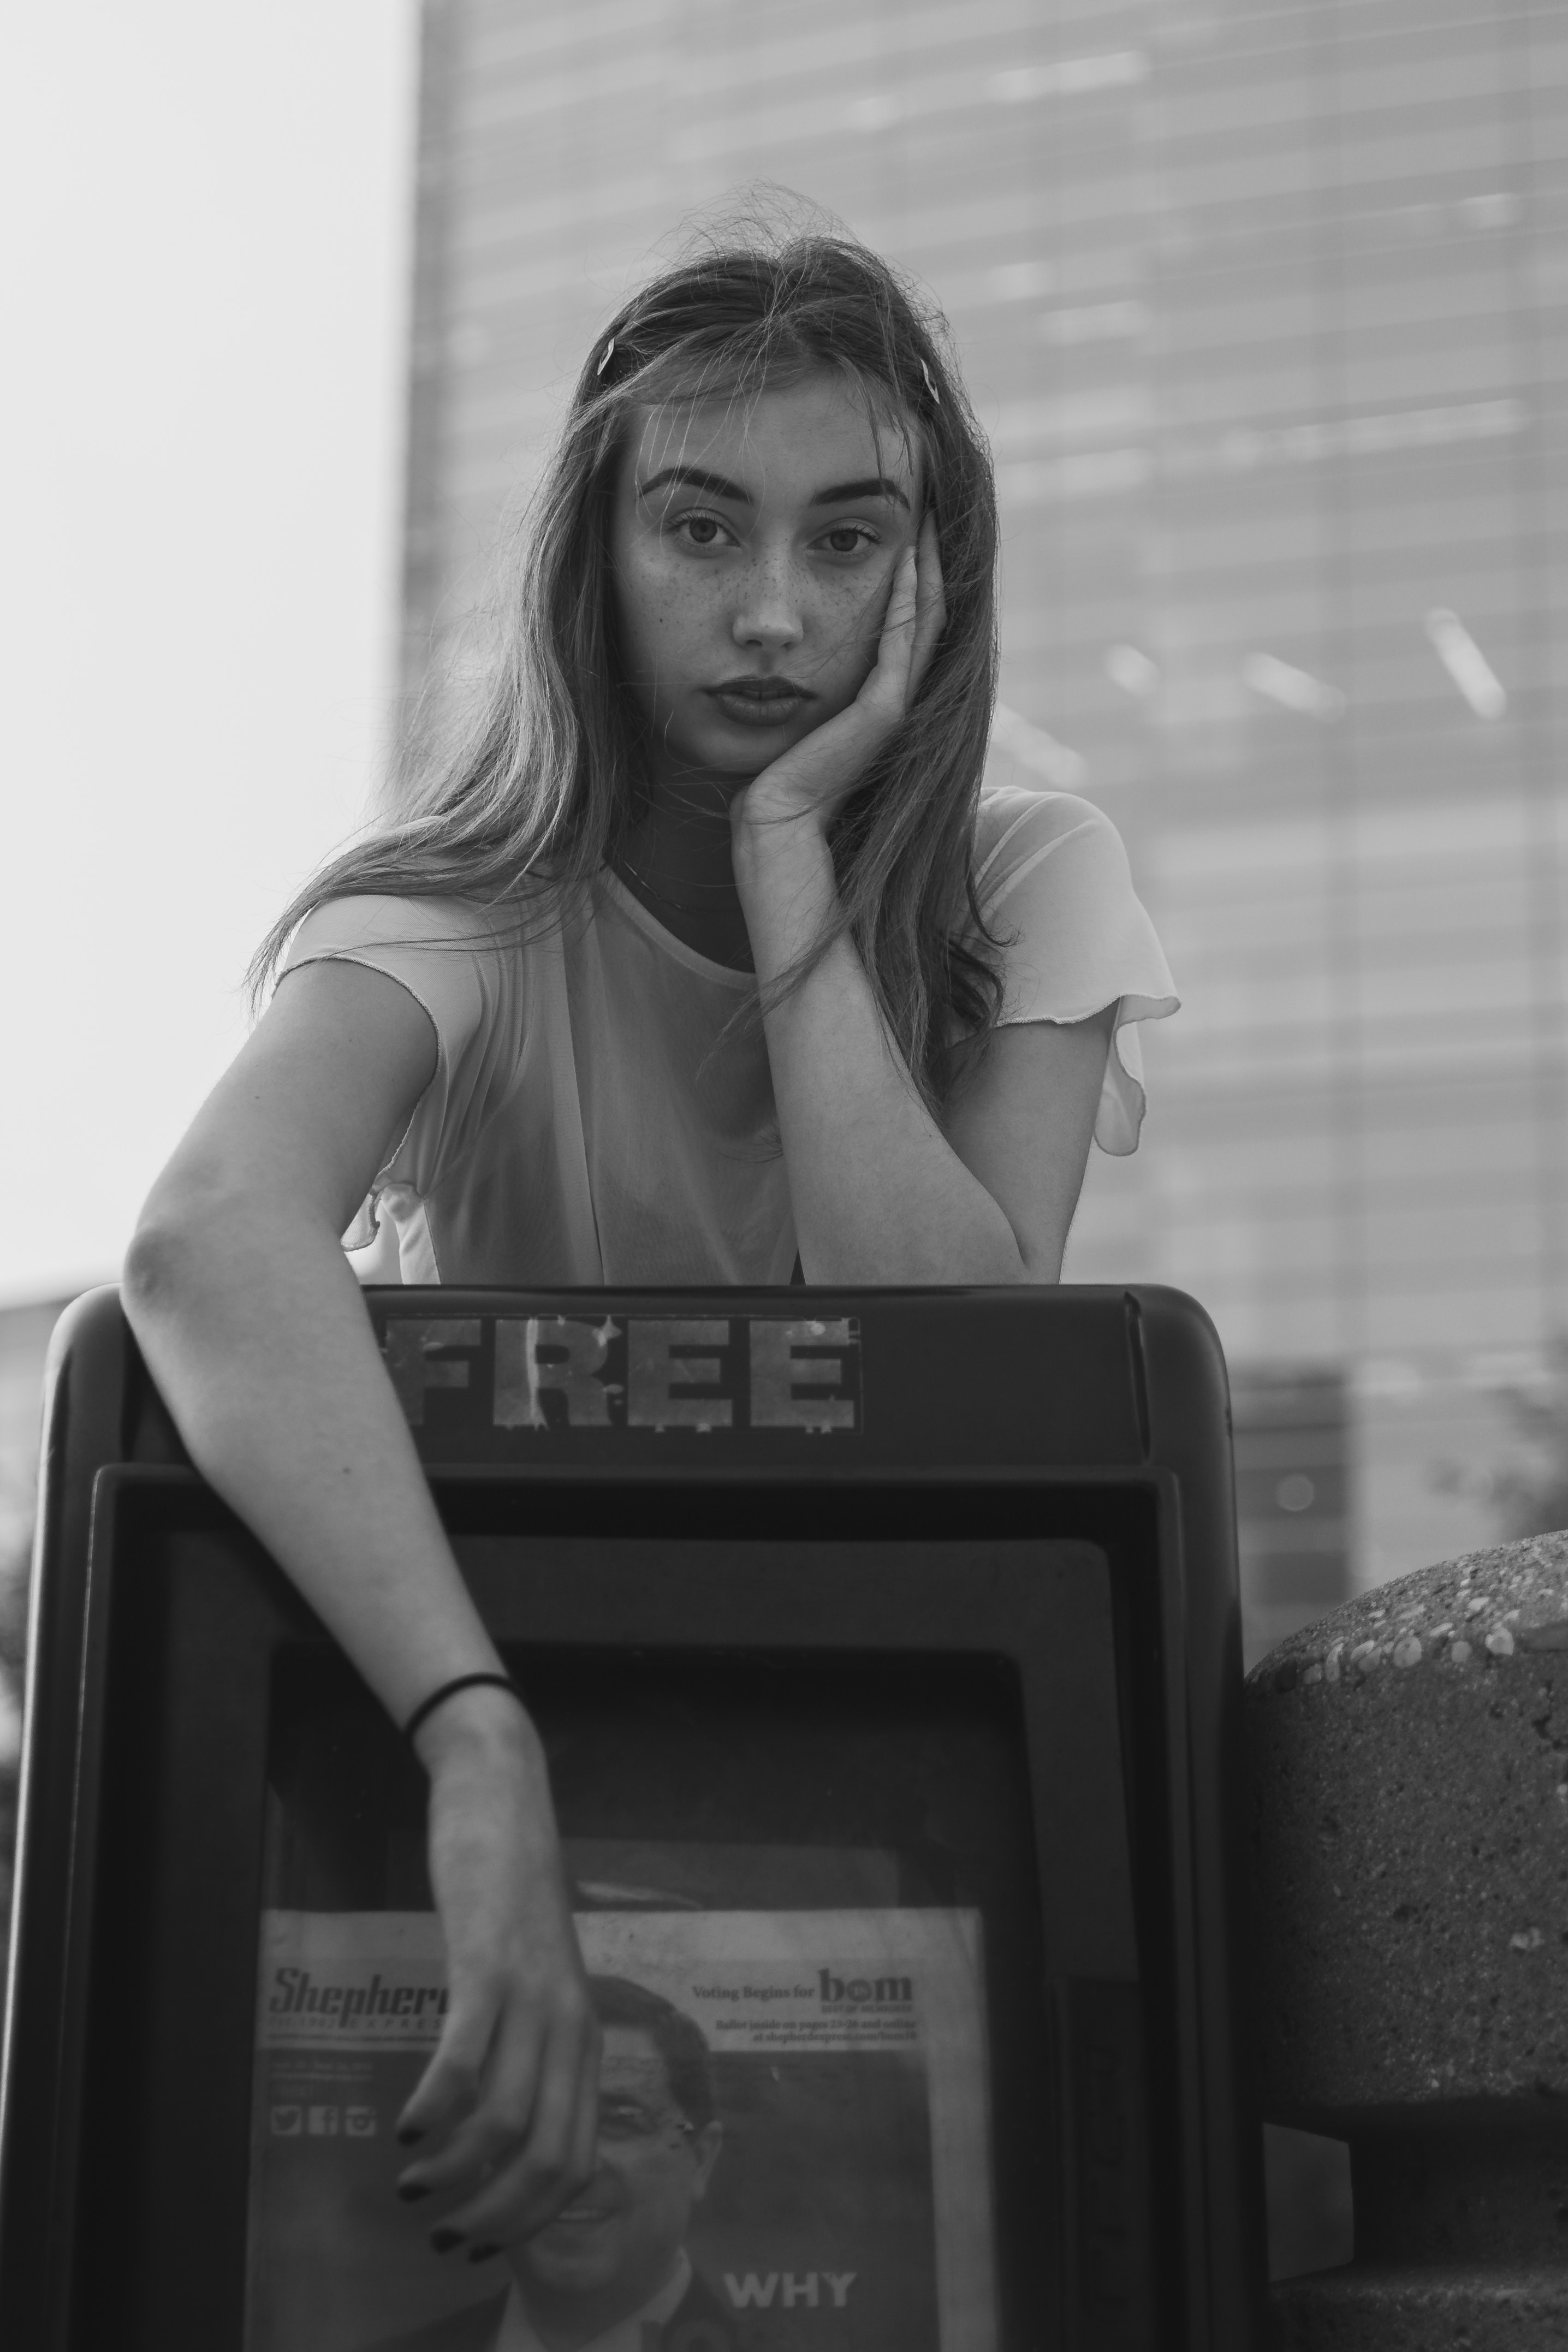 Black and white of young woman leaning over a free newspaper stand with one hand on her cheek.